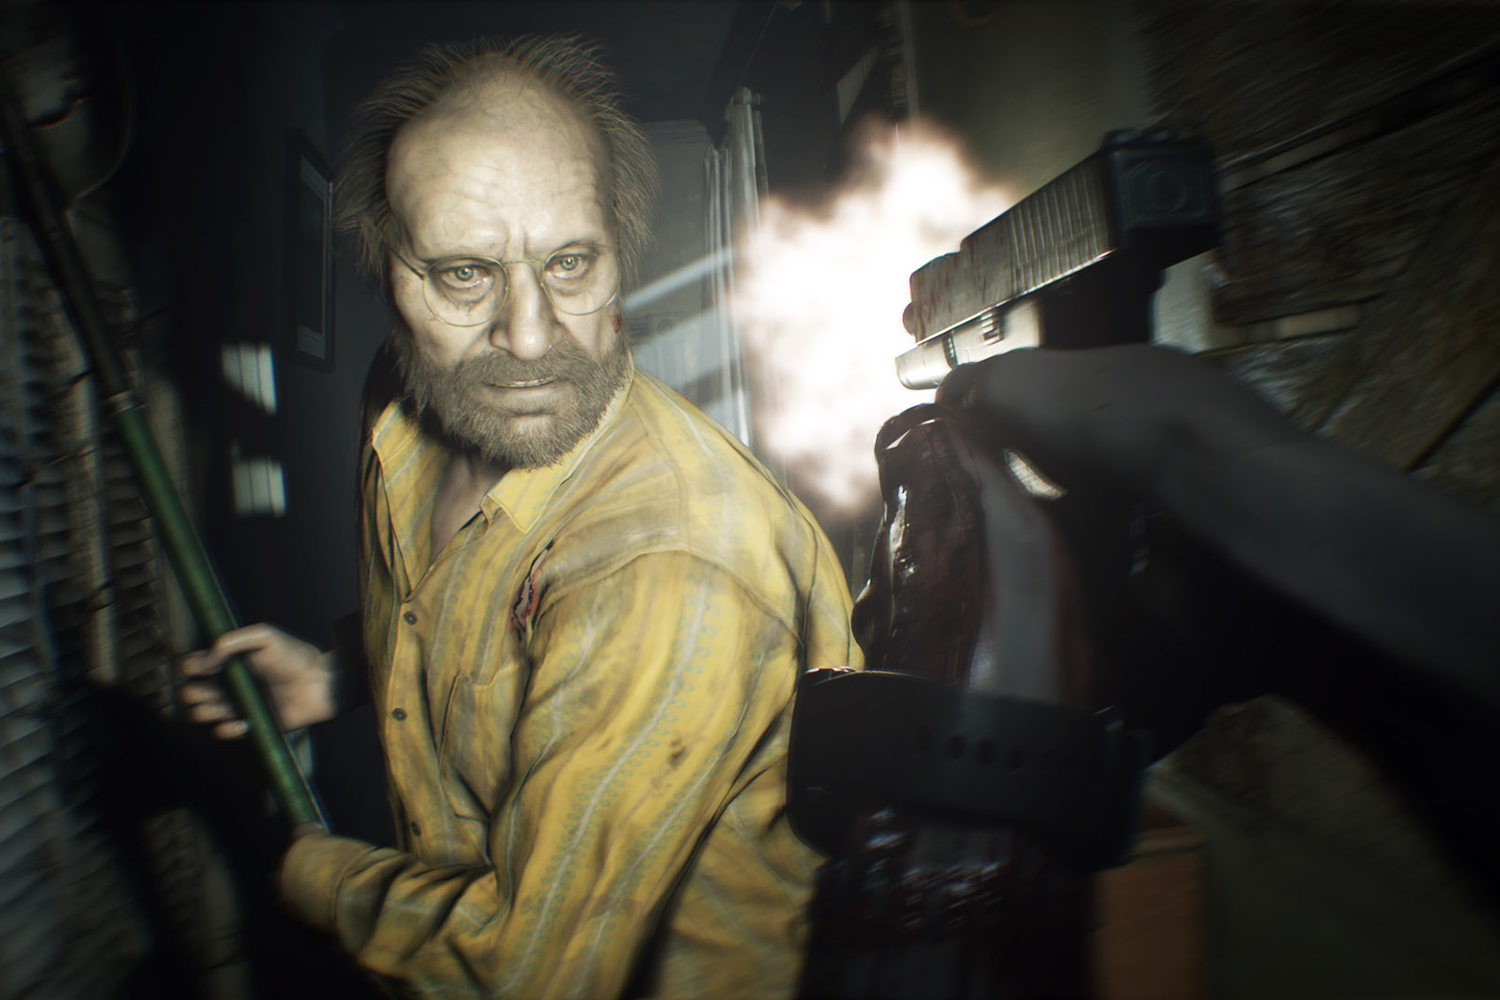 Resident Evil 7 biohazard sold 2.5m units in first three days